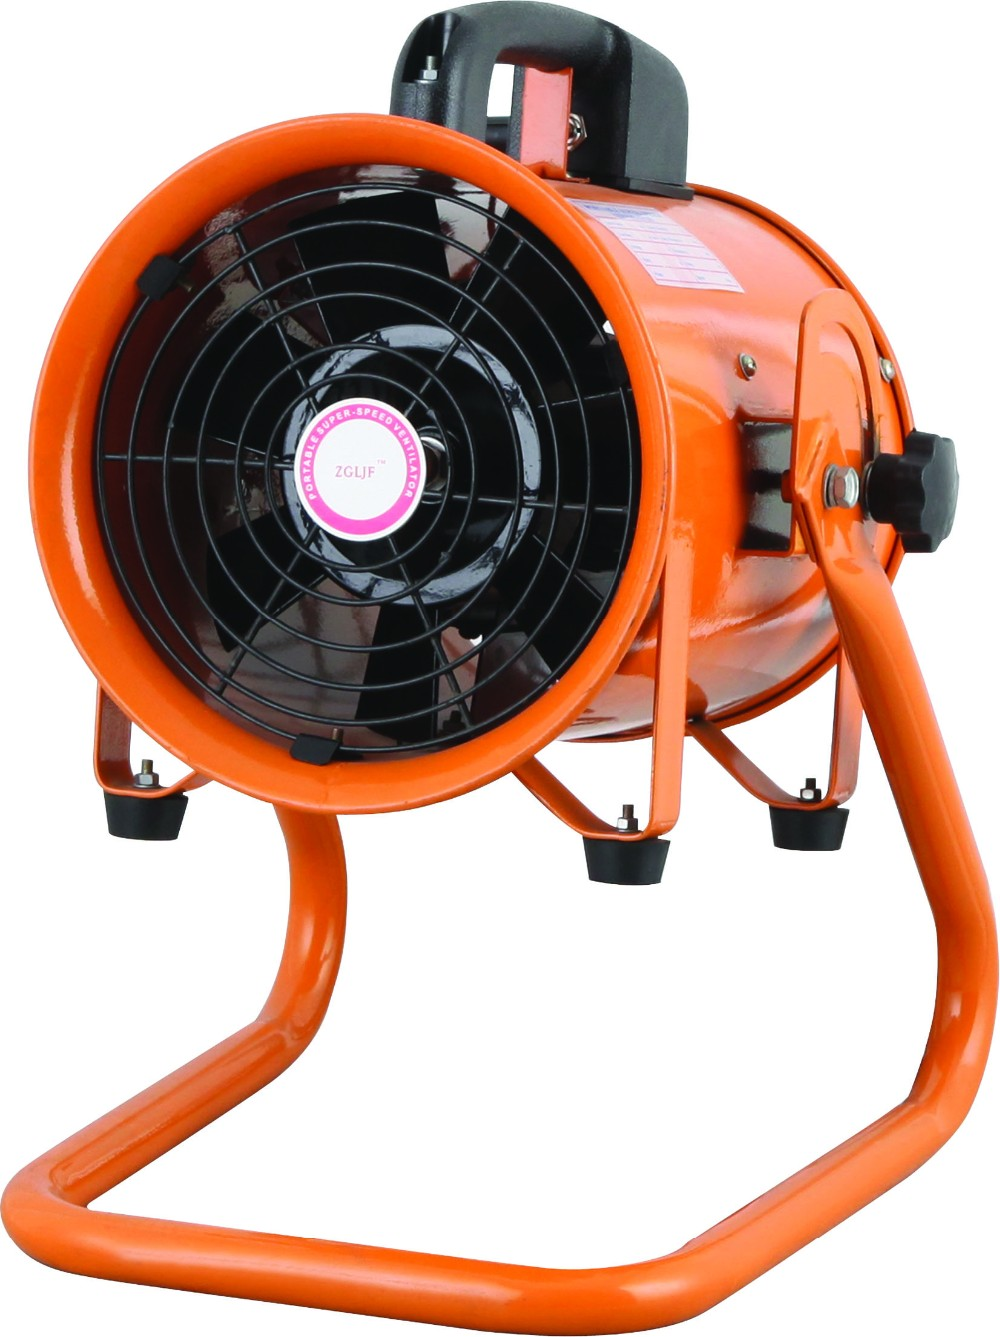 Portable Exhaust Fans : Portable smoke exhaust fan sewer blower view v